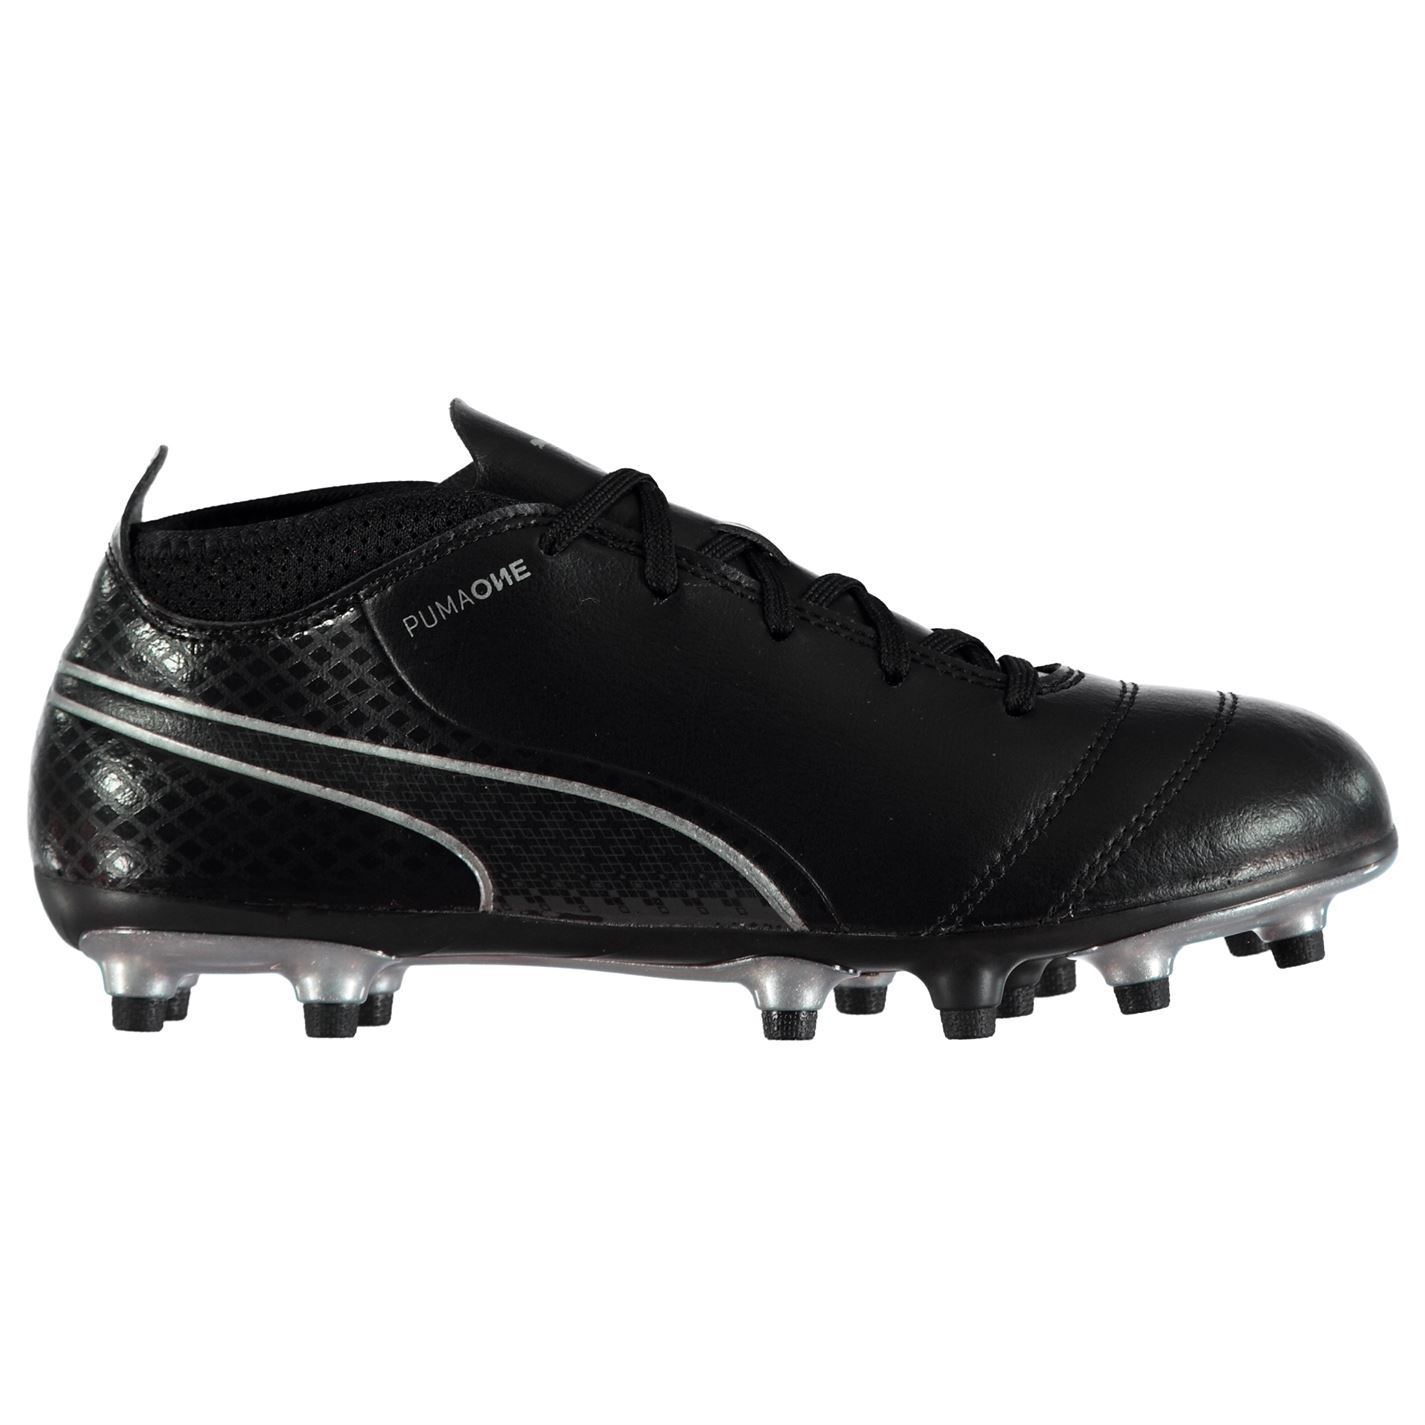 ... Puma One 17.4 FG Firm Ground Football Boots Childs Black Soccer Shoes  Cleats ... 03a3e4157